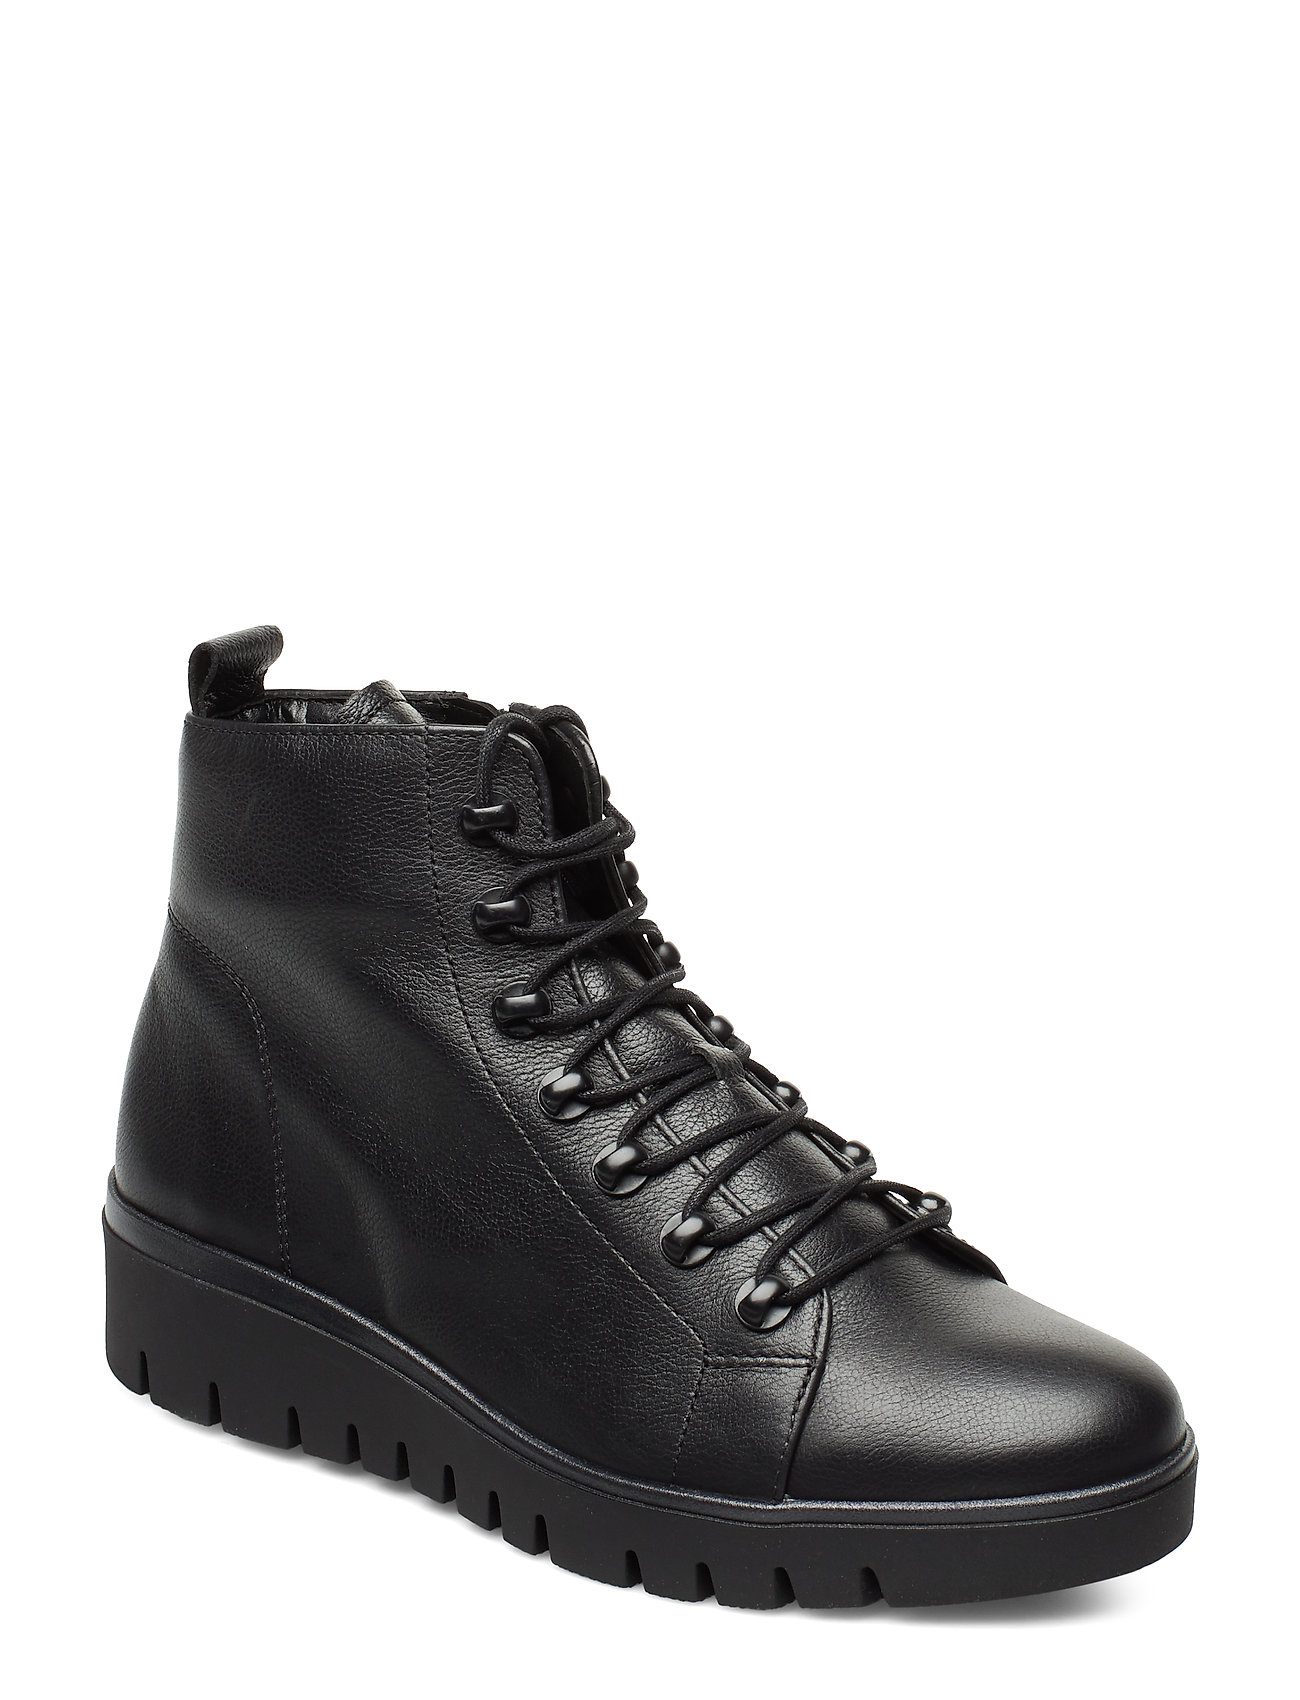 Image of Ankle Boots Shoes Boots Ankle Boots Ankle Boots Flat Heel Sort Gabor (3239059443)